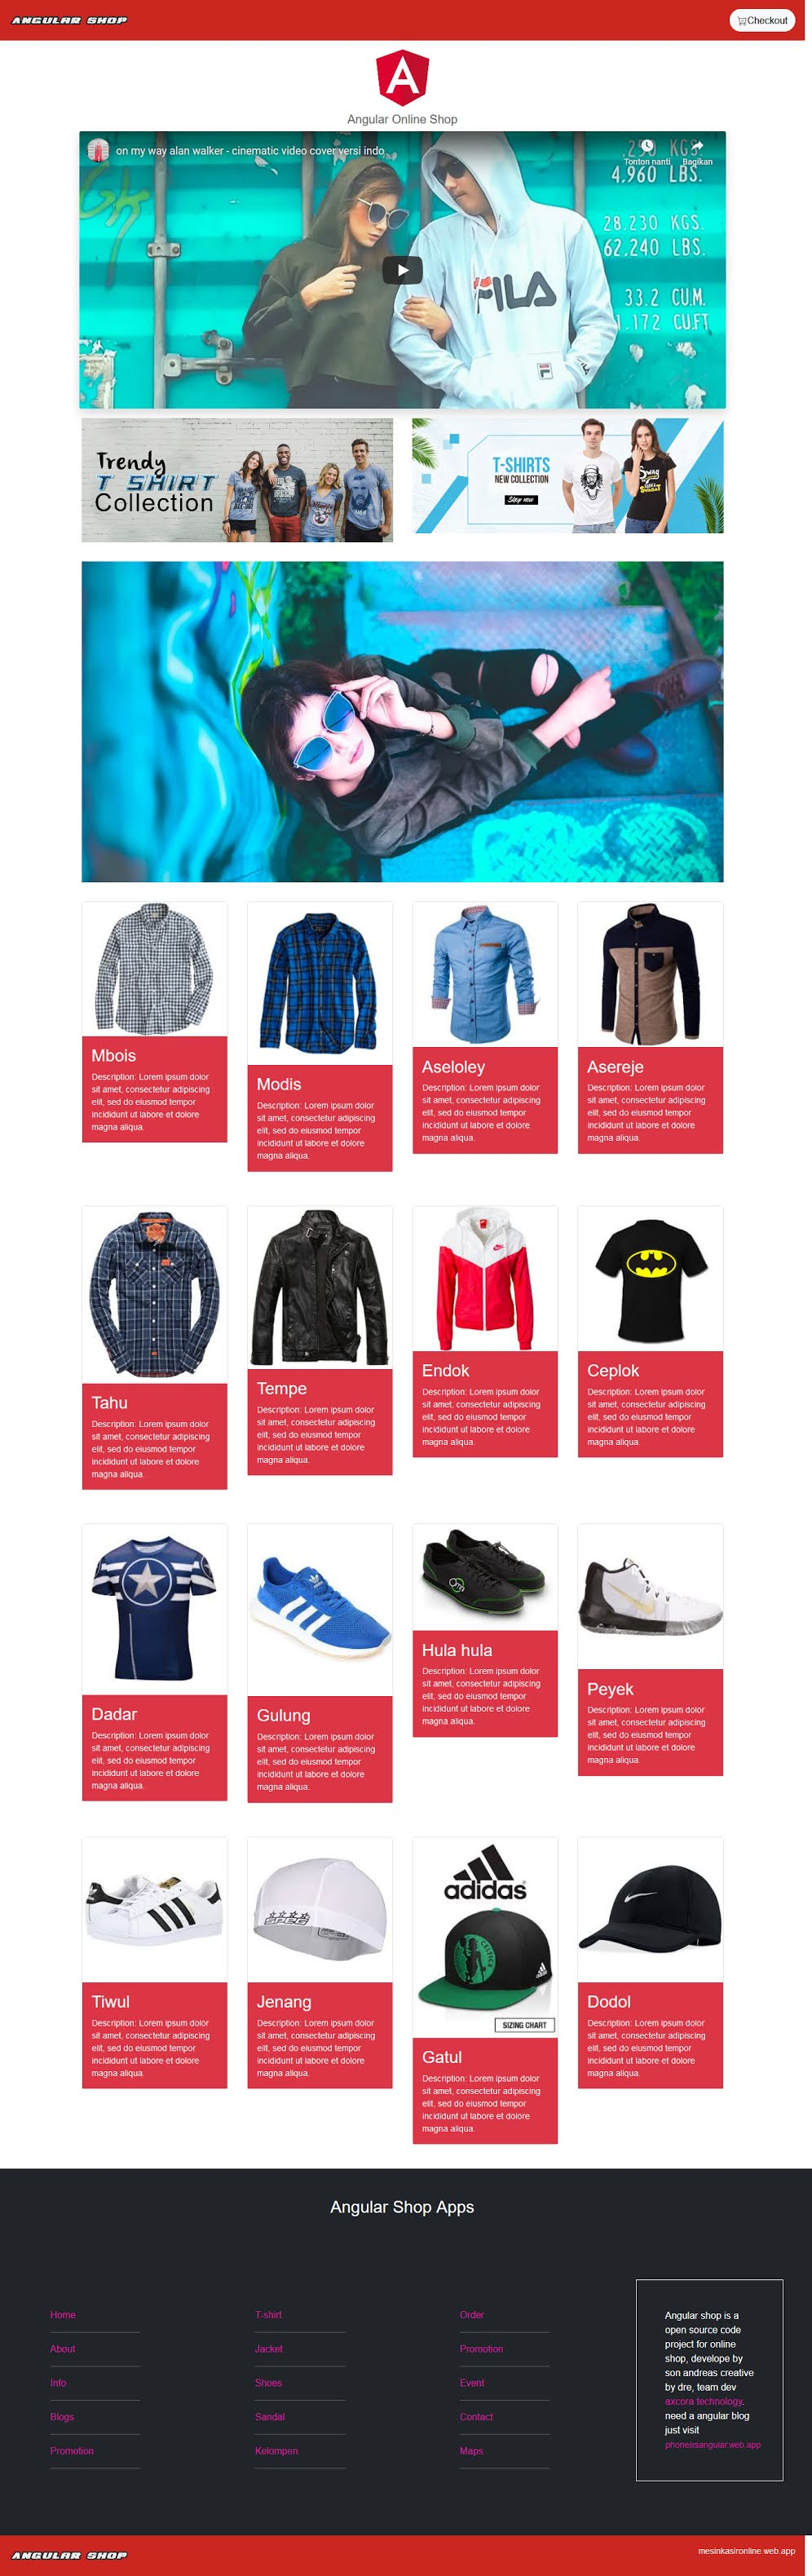 free download new modern online shop build with angular